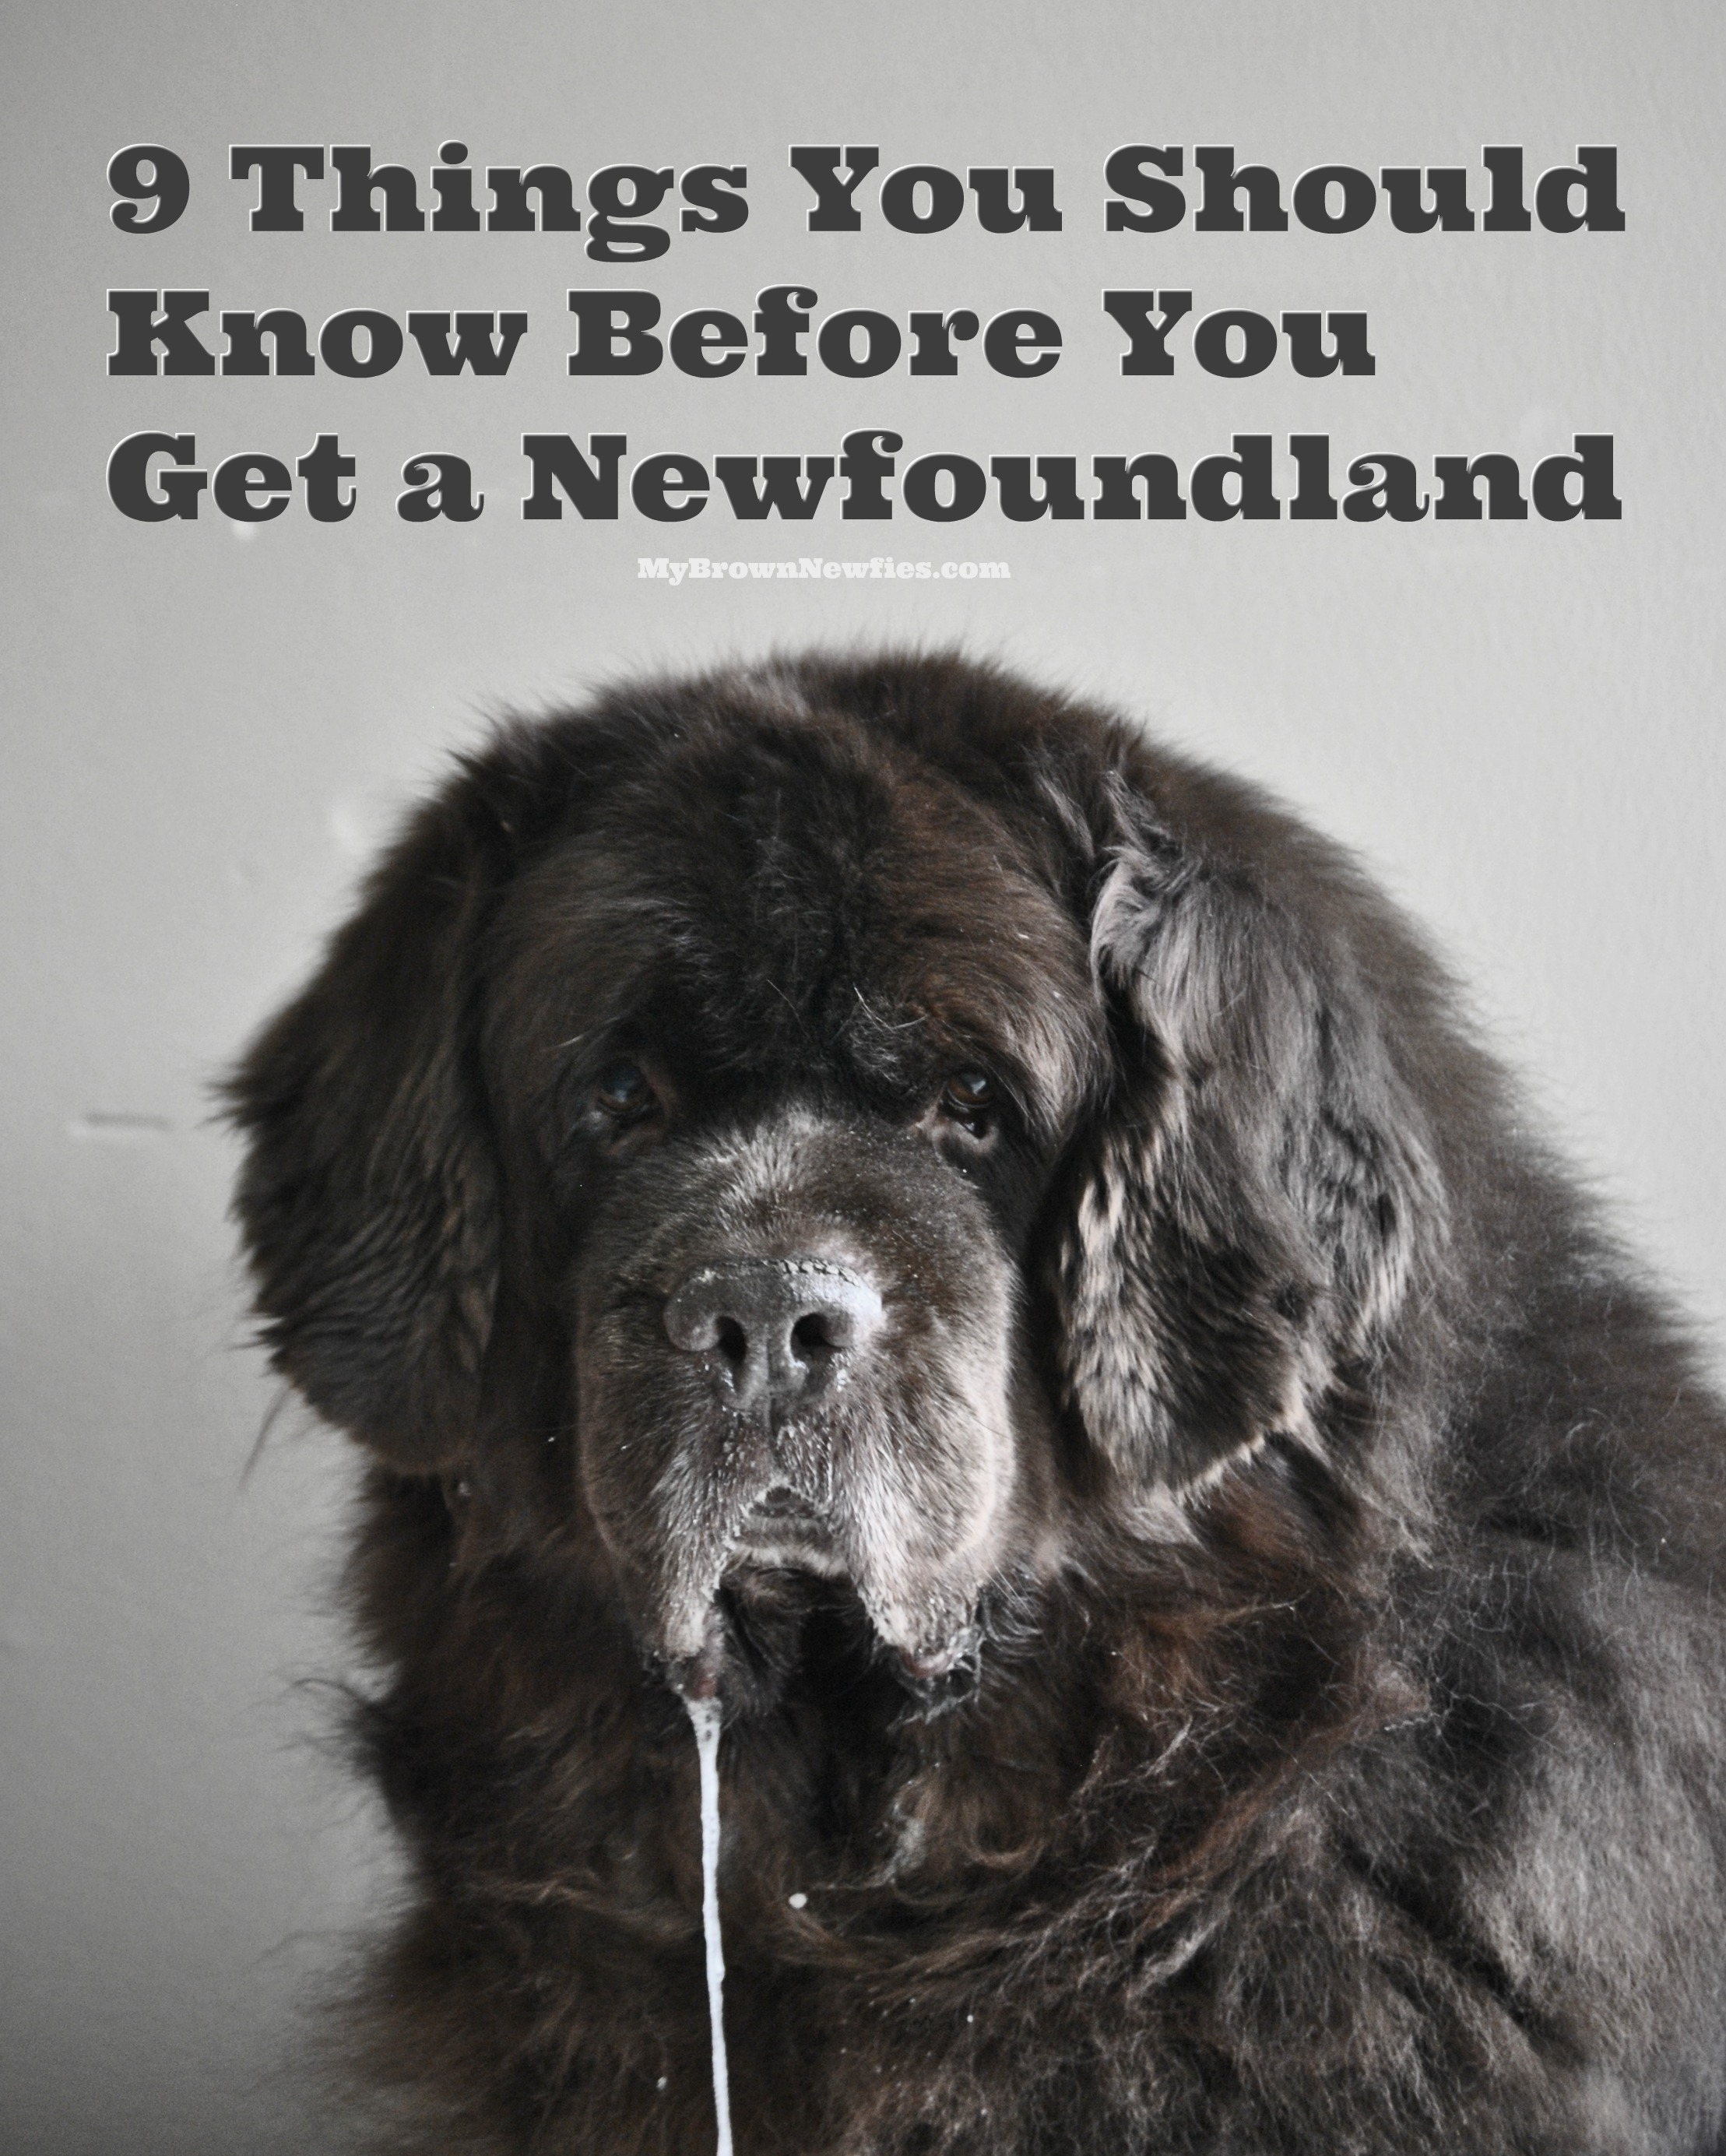 So You Think You Want A Newfoundland  Here's 9 Things You Should